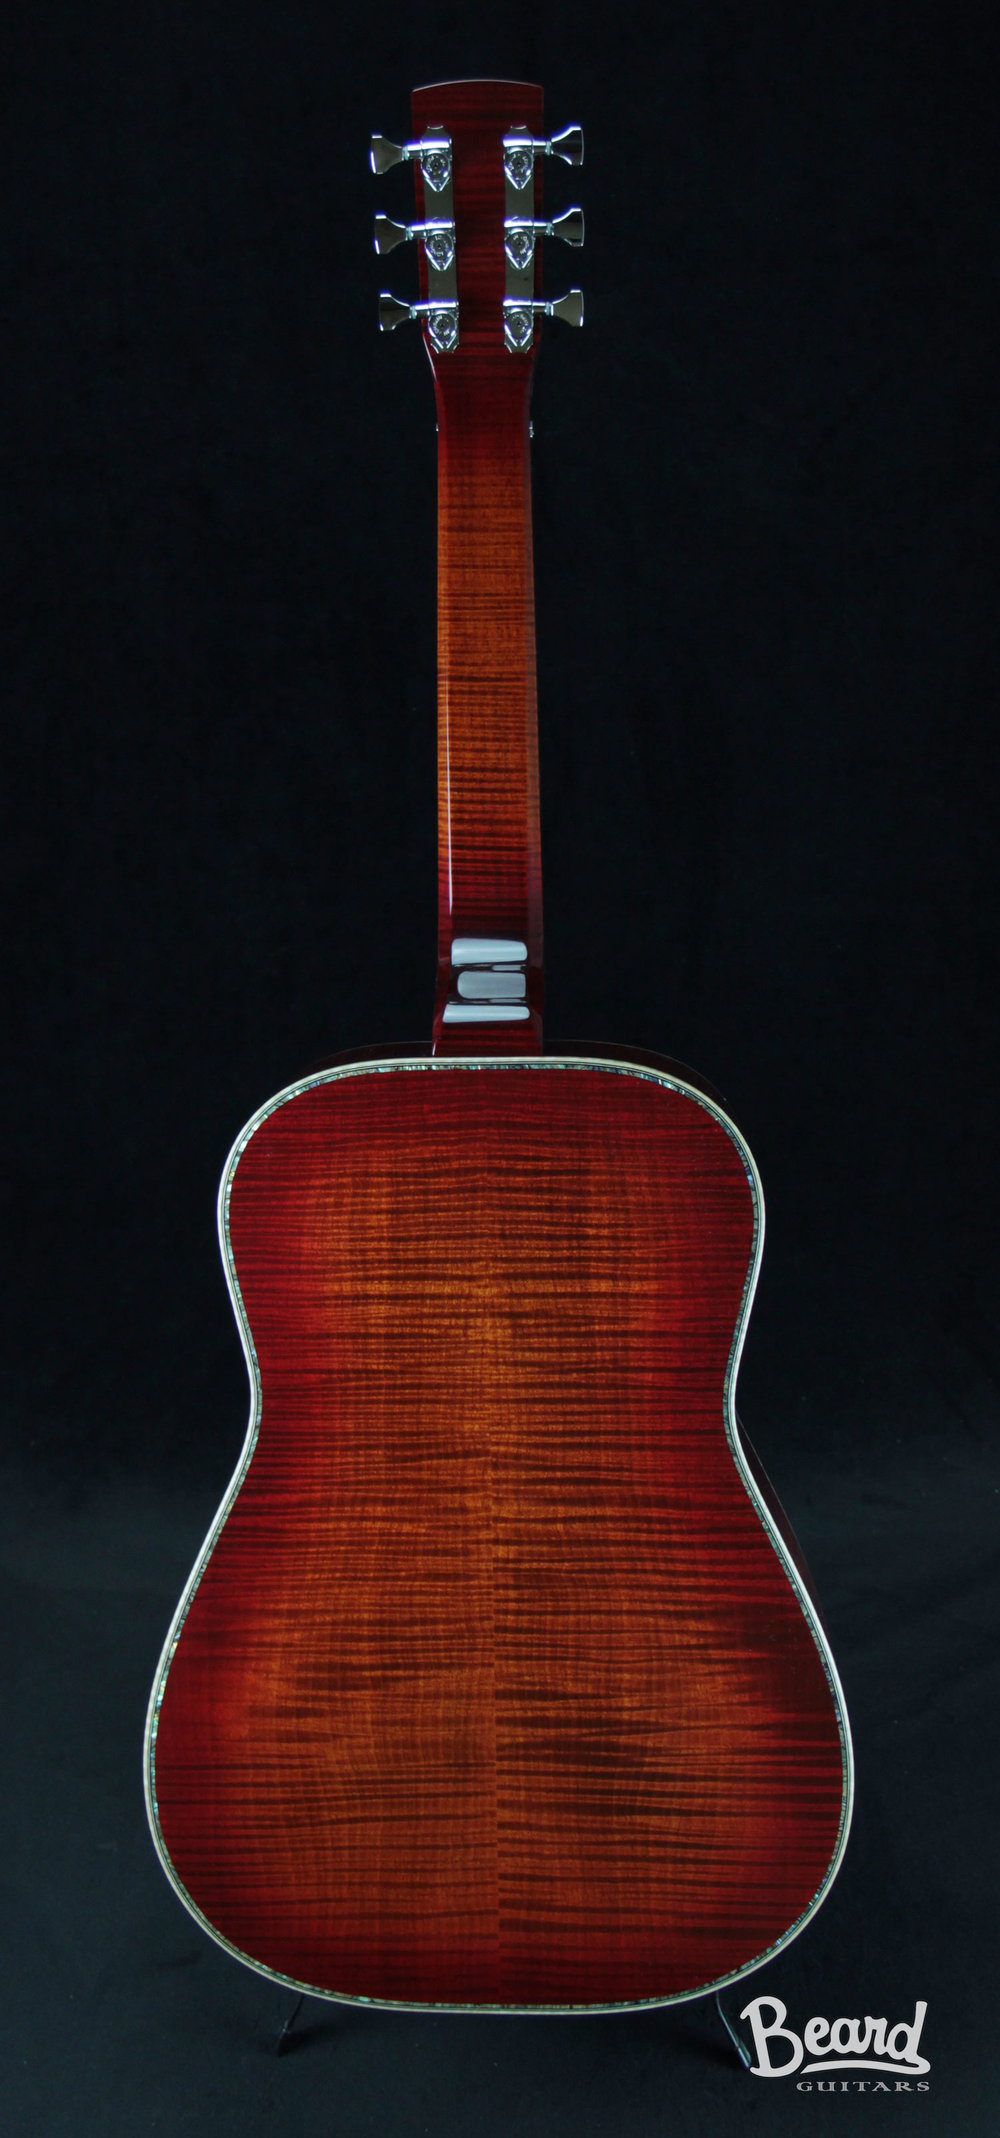 E-Model-Maple-Cherry-Fire-Burst-inlay-with-hiphsot-FB.jpg